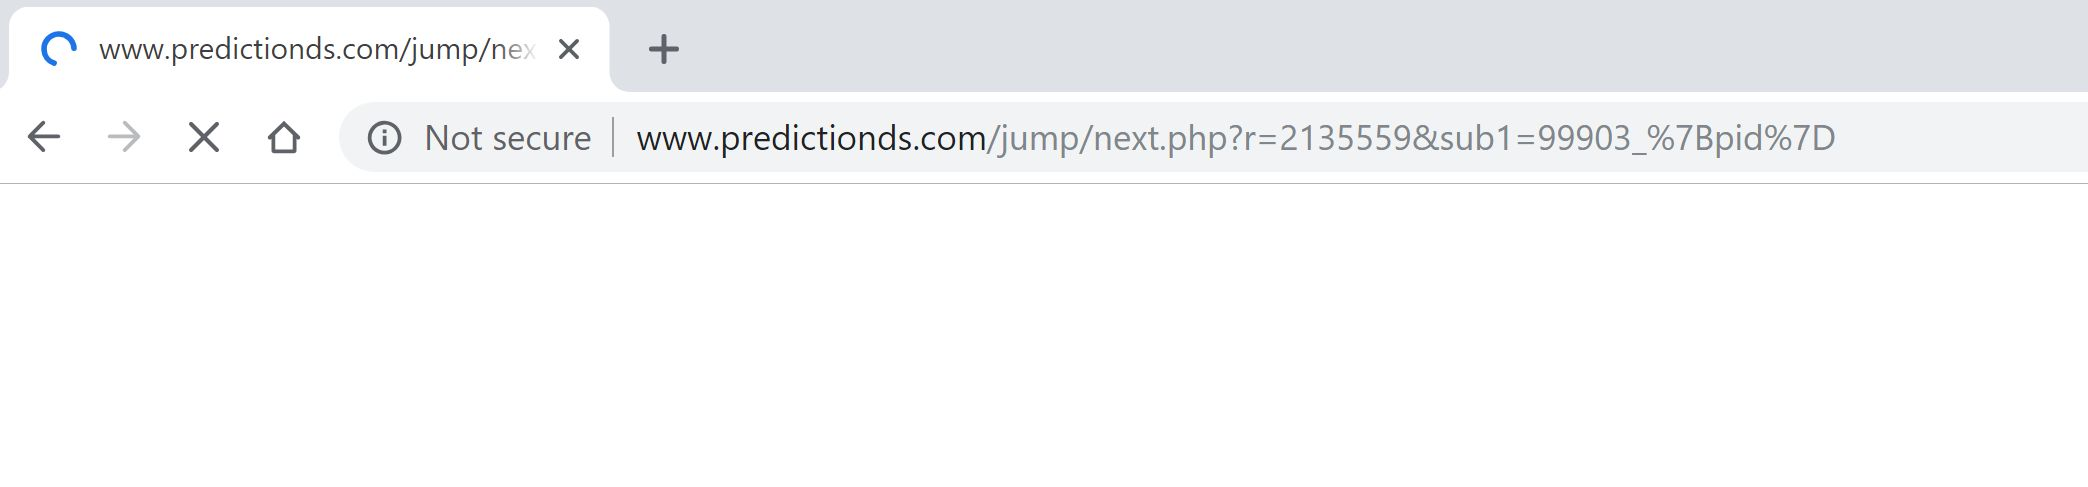 predictionds.com redirect virus